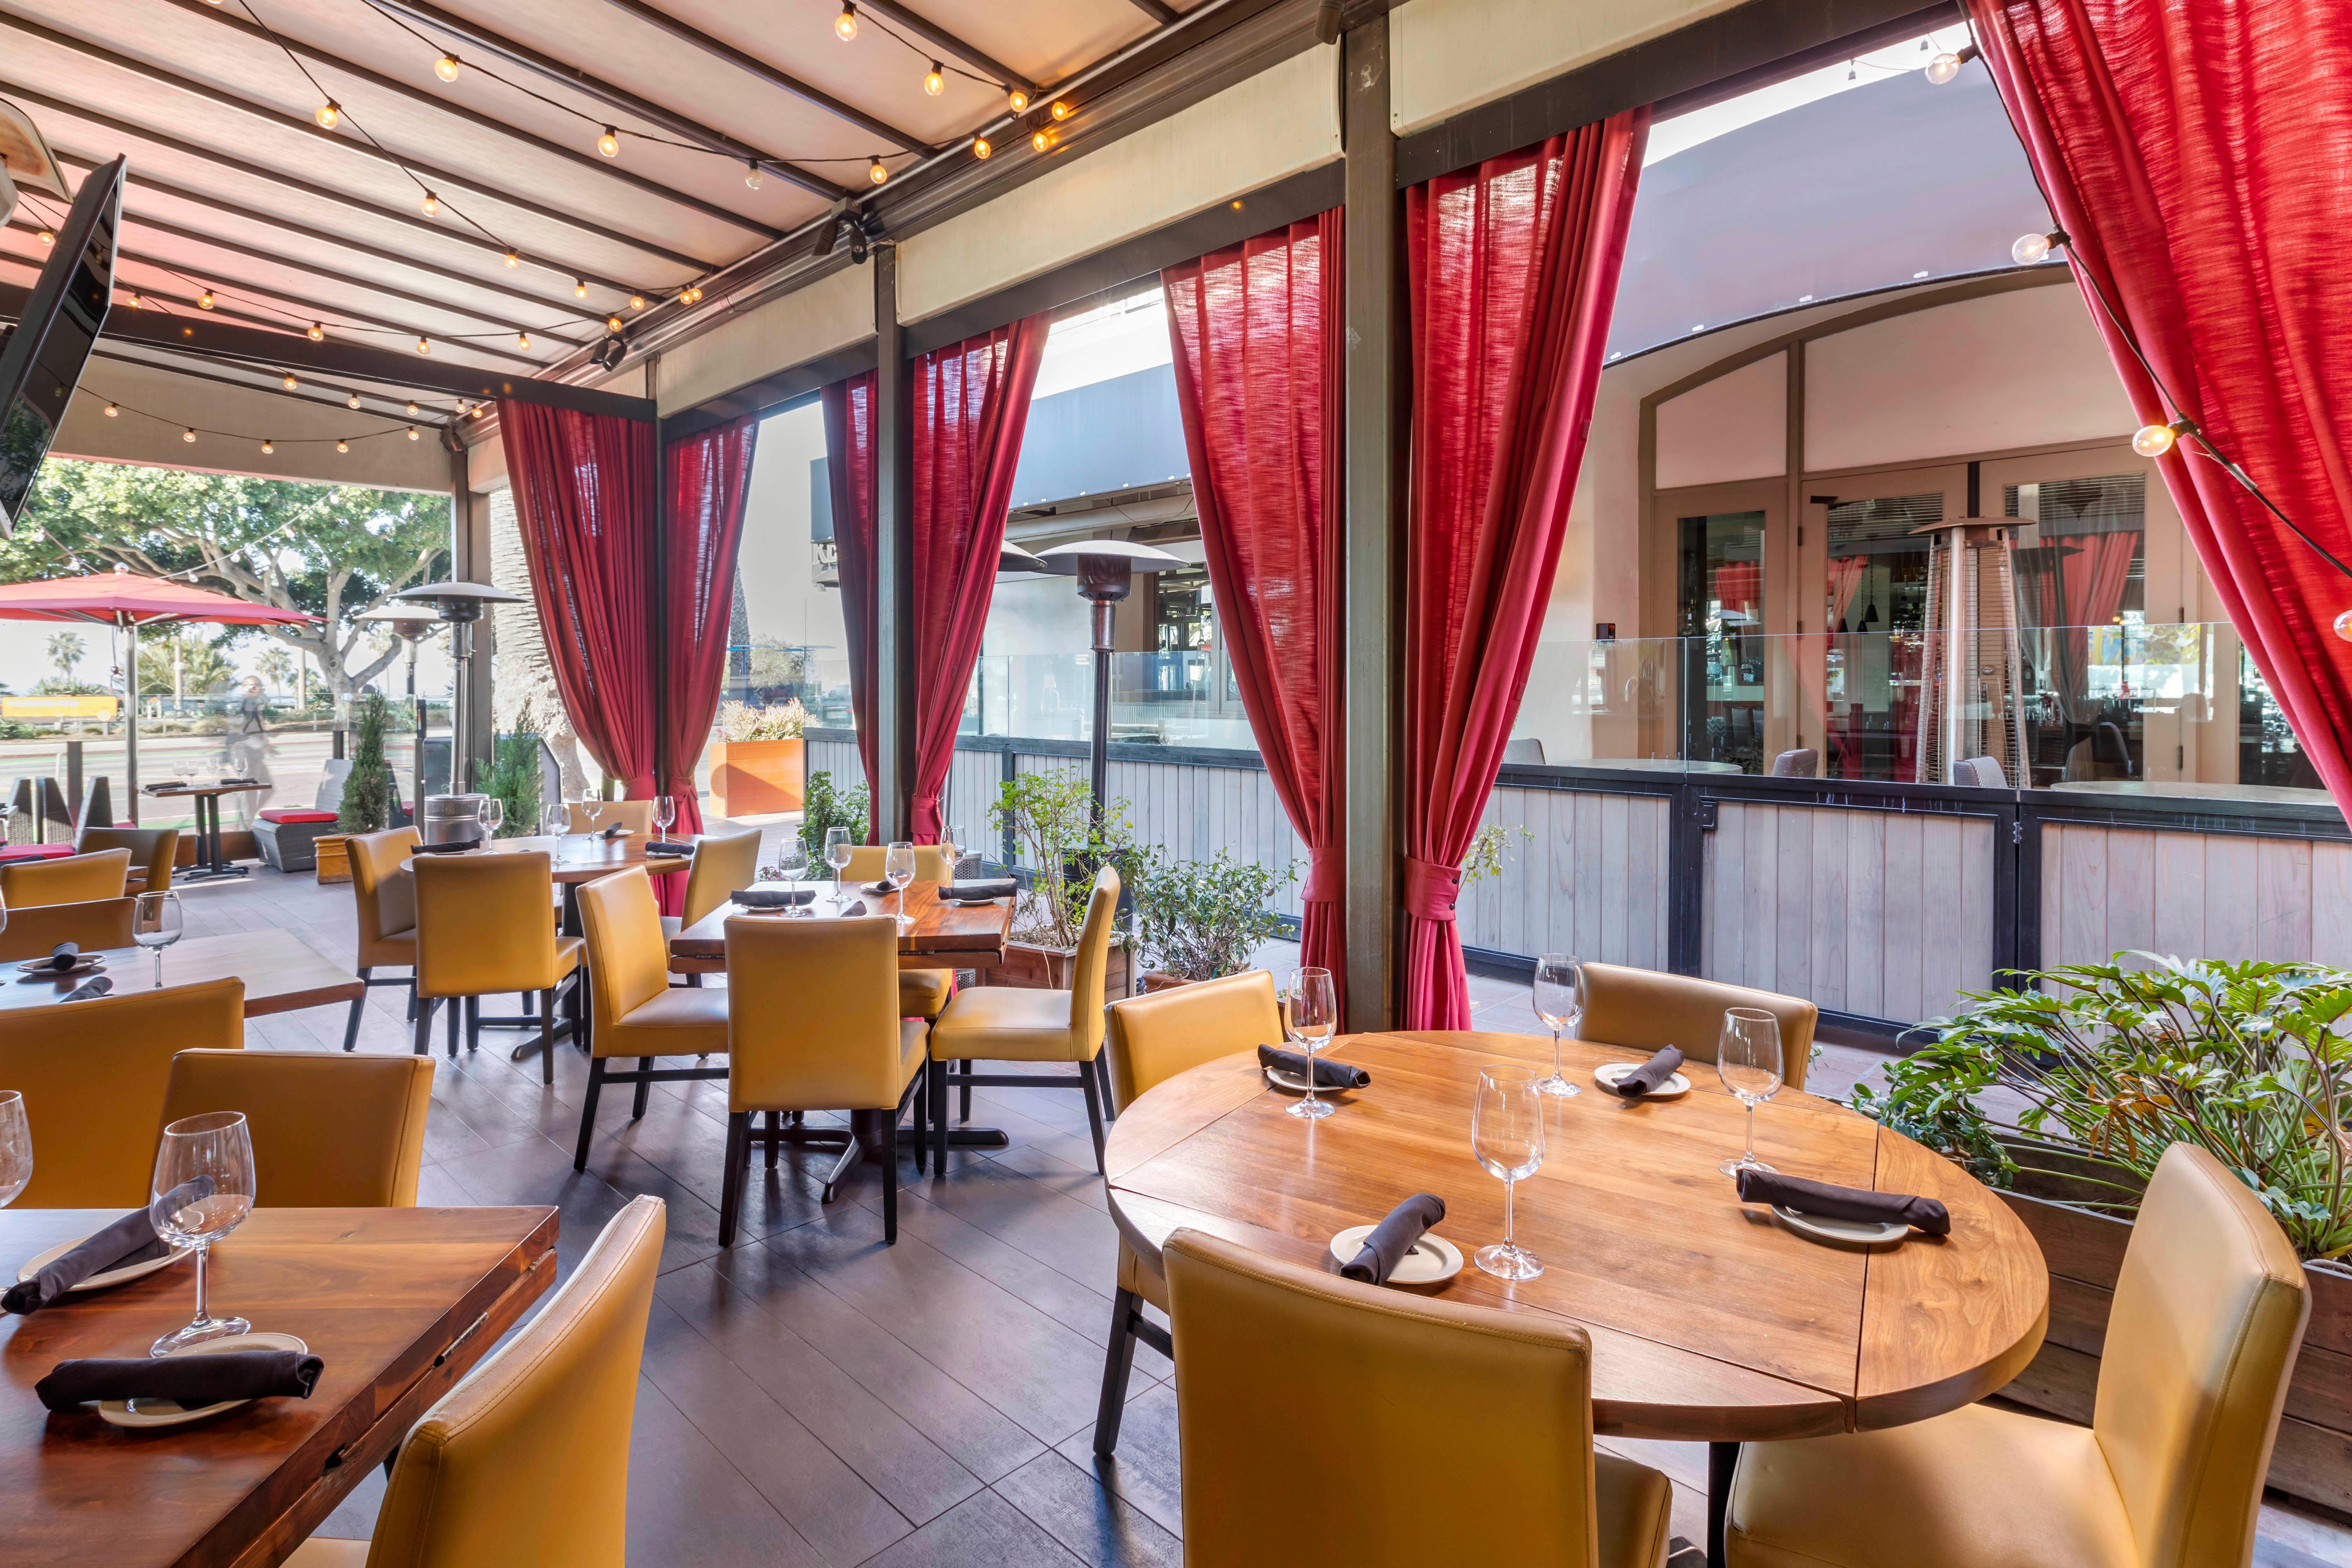 Del Frisco's Grille Santa Monica VIP Patio group dining room